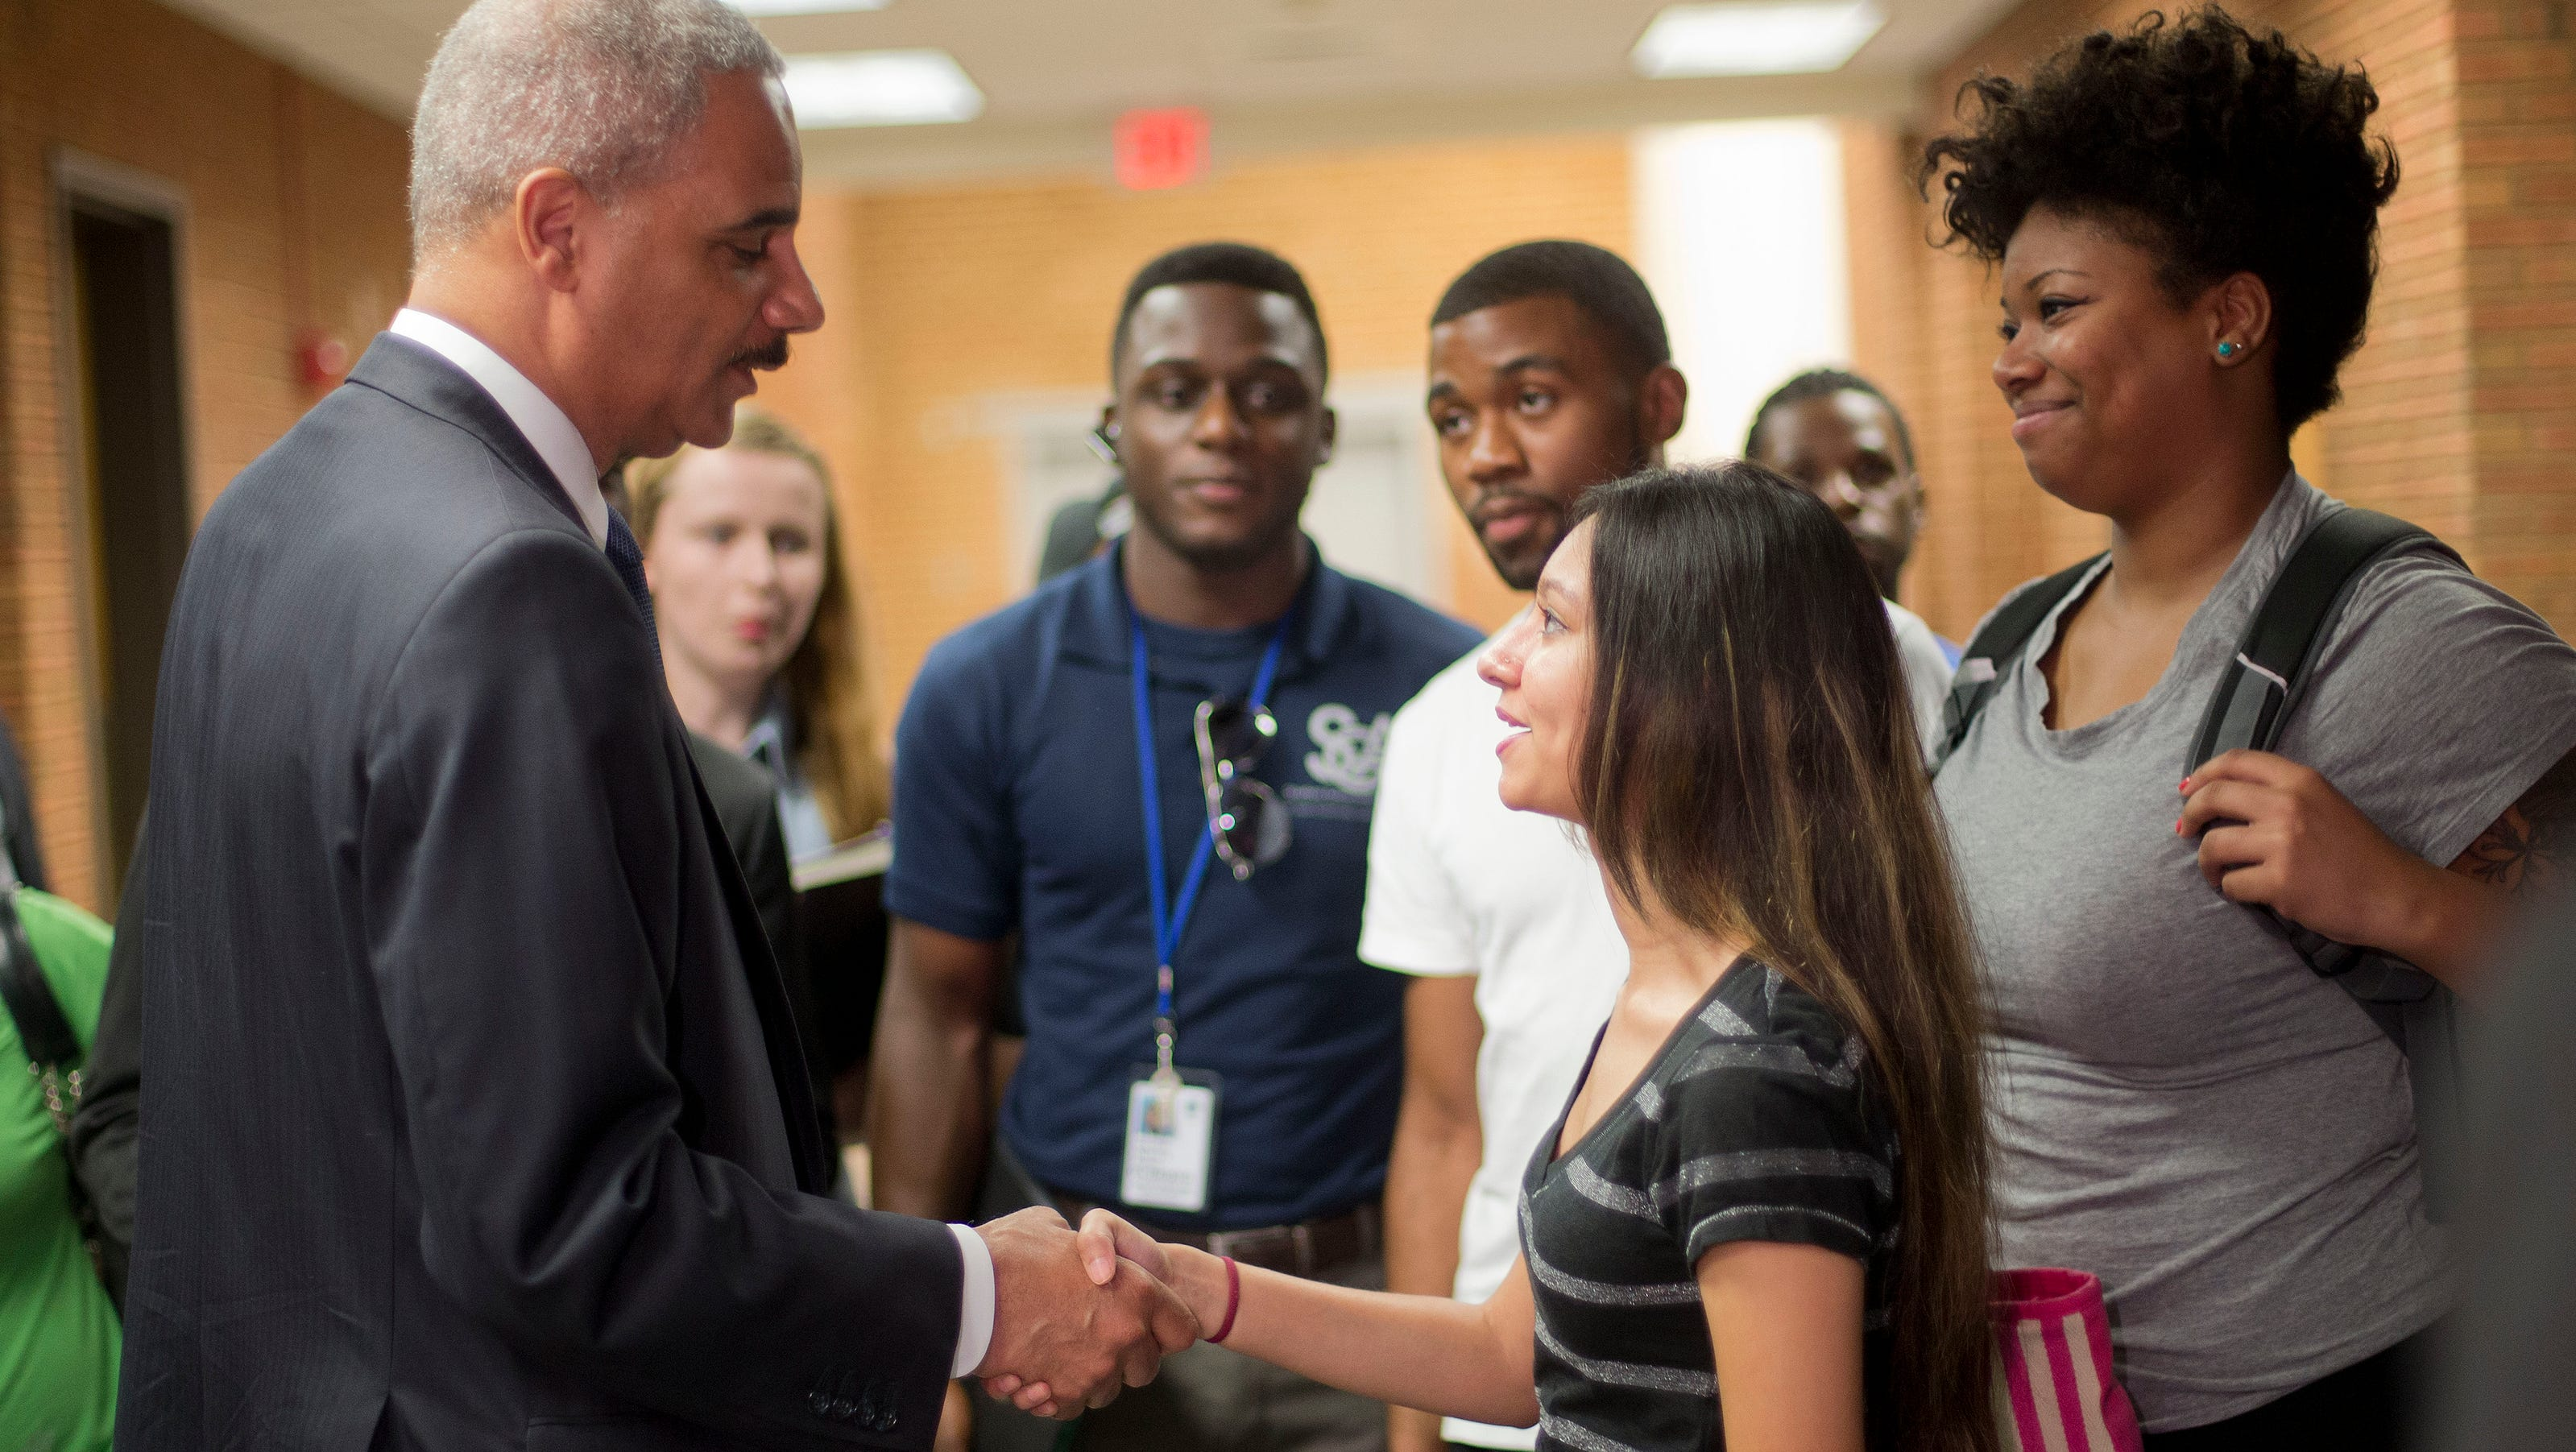 Holder's stop in Ferguson is deeply personal: Attorney General Eric Holder flew to Ferguson, Mo., on Wednesday as the nation's chief law enforcement officer leading an investigation into a police shooting.